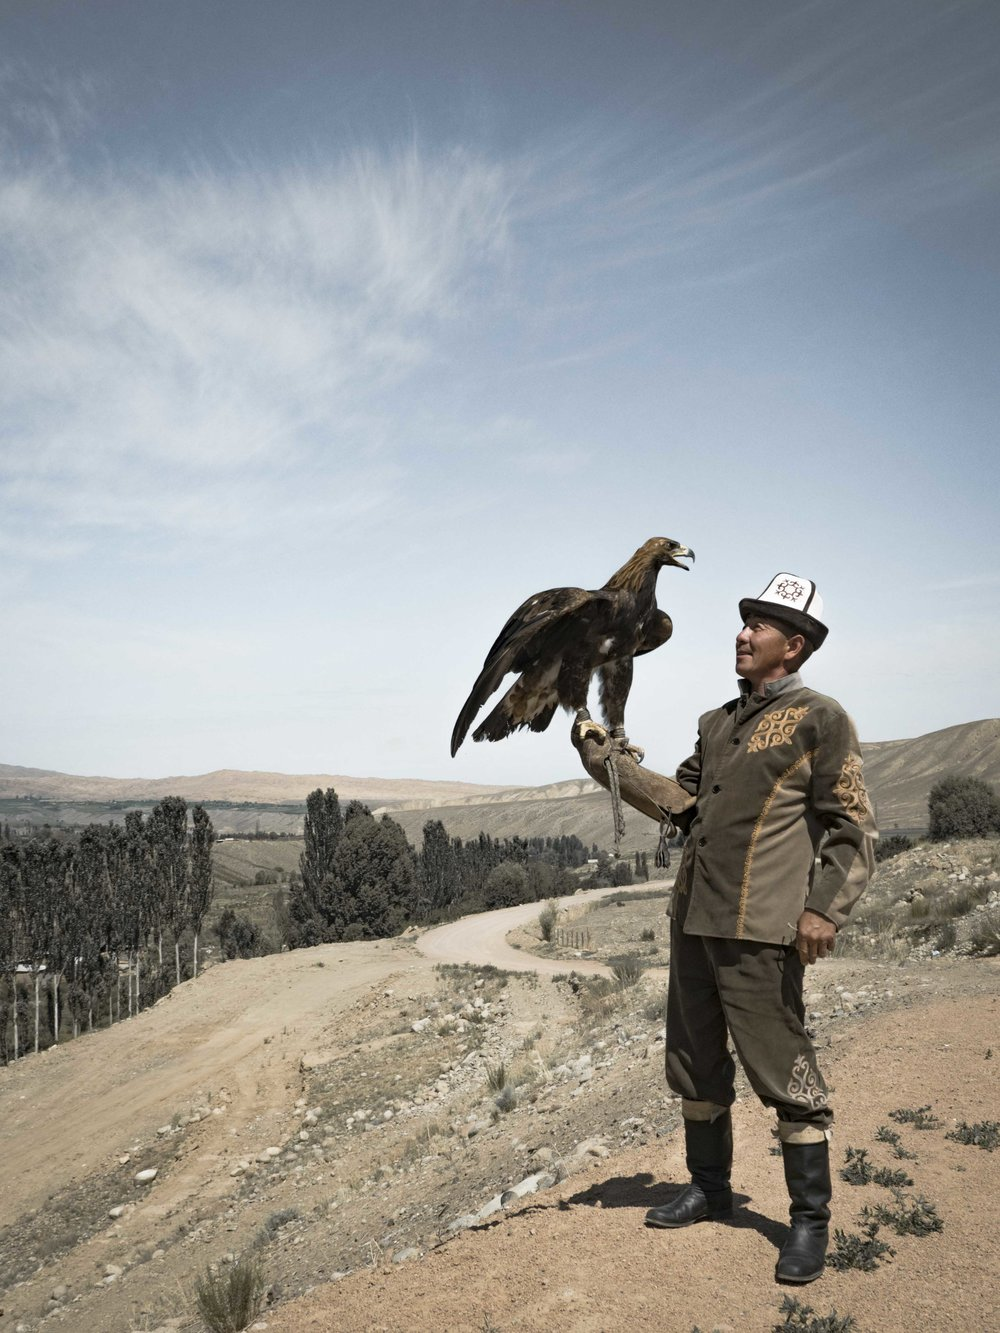 The Kyrgyz Eagle Hunter. Photo: Kel Morales.